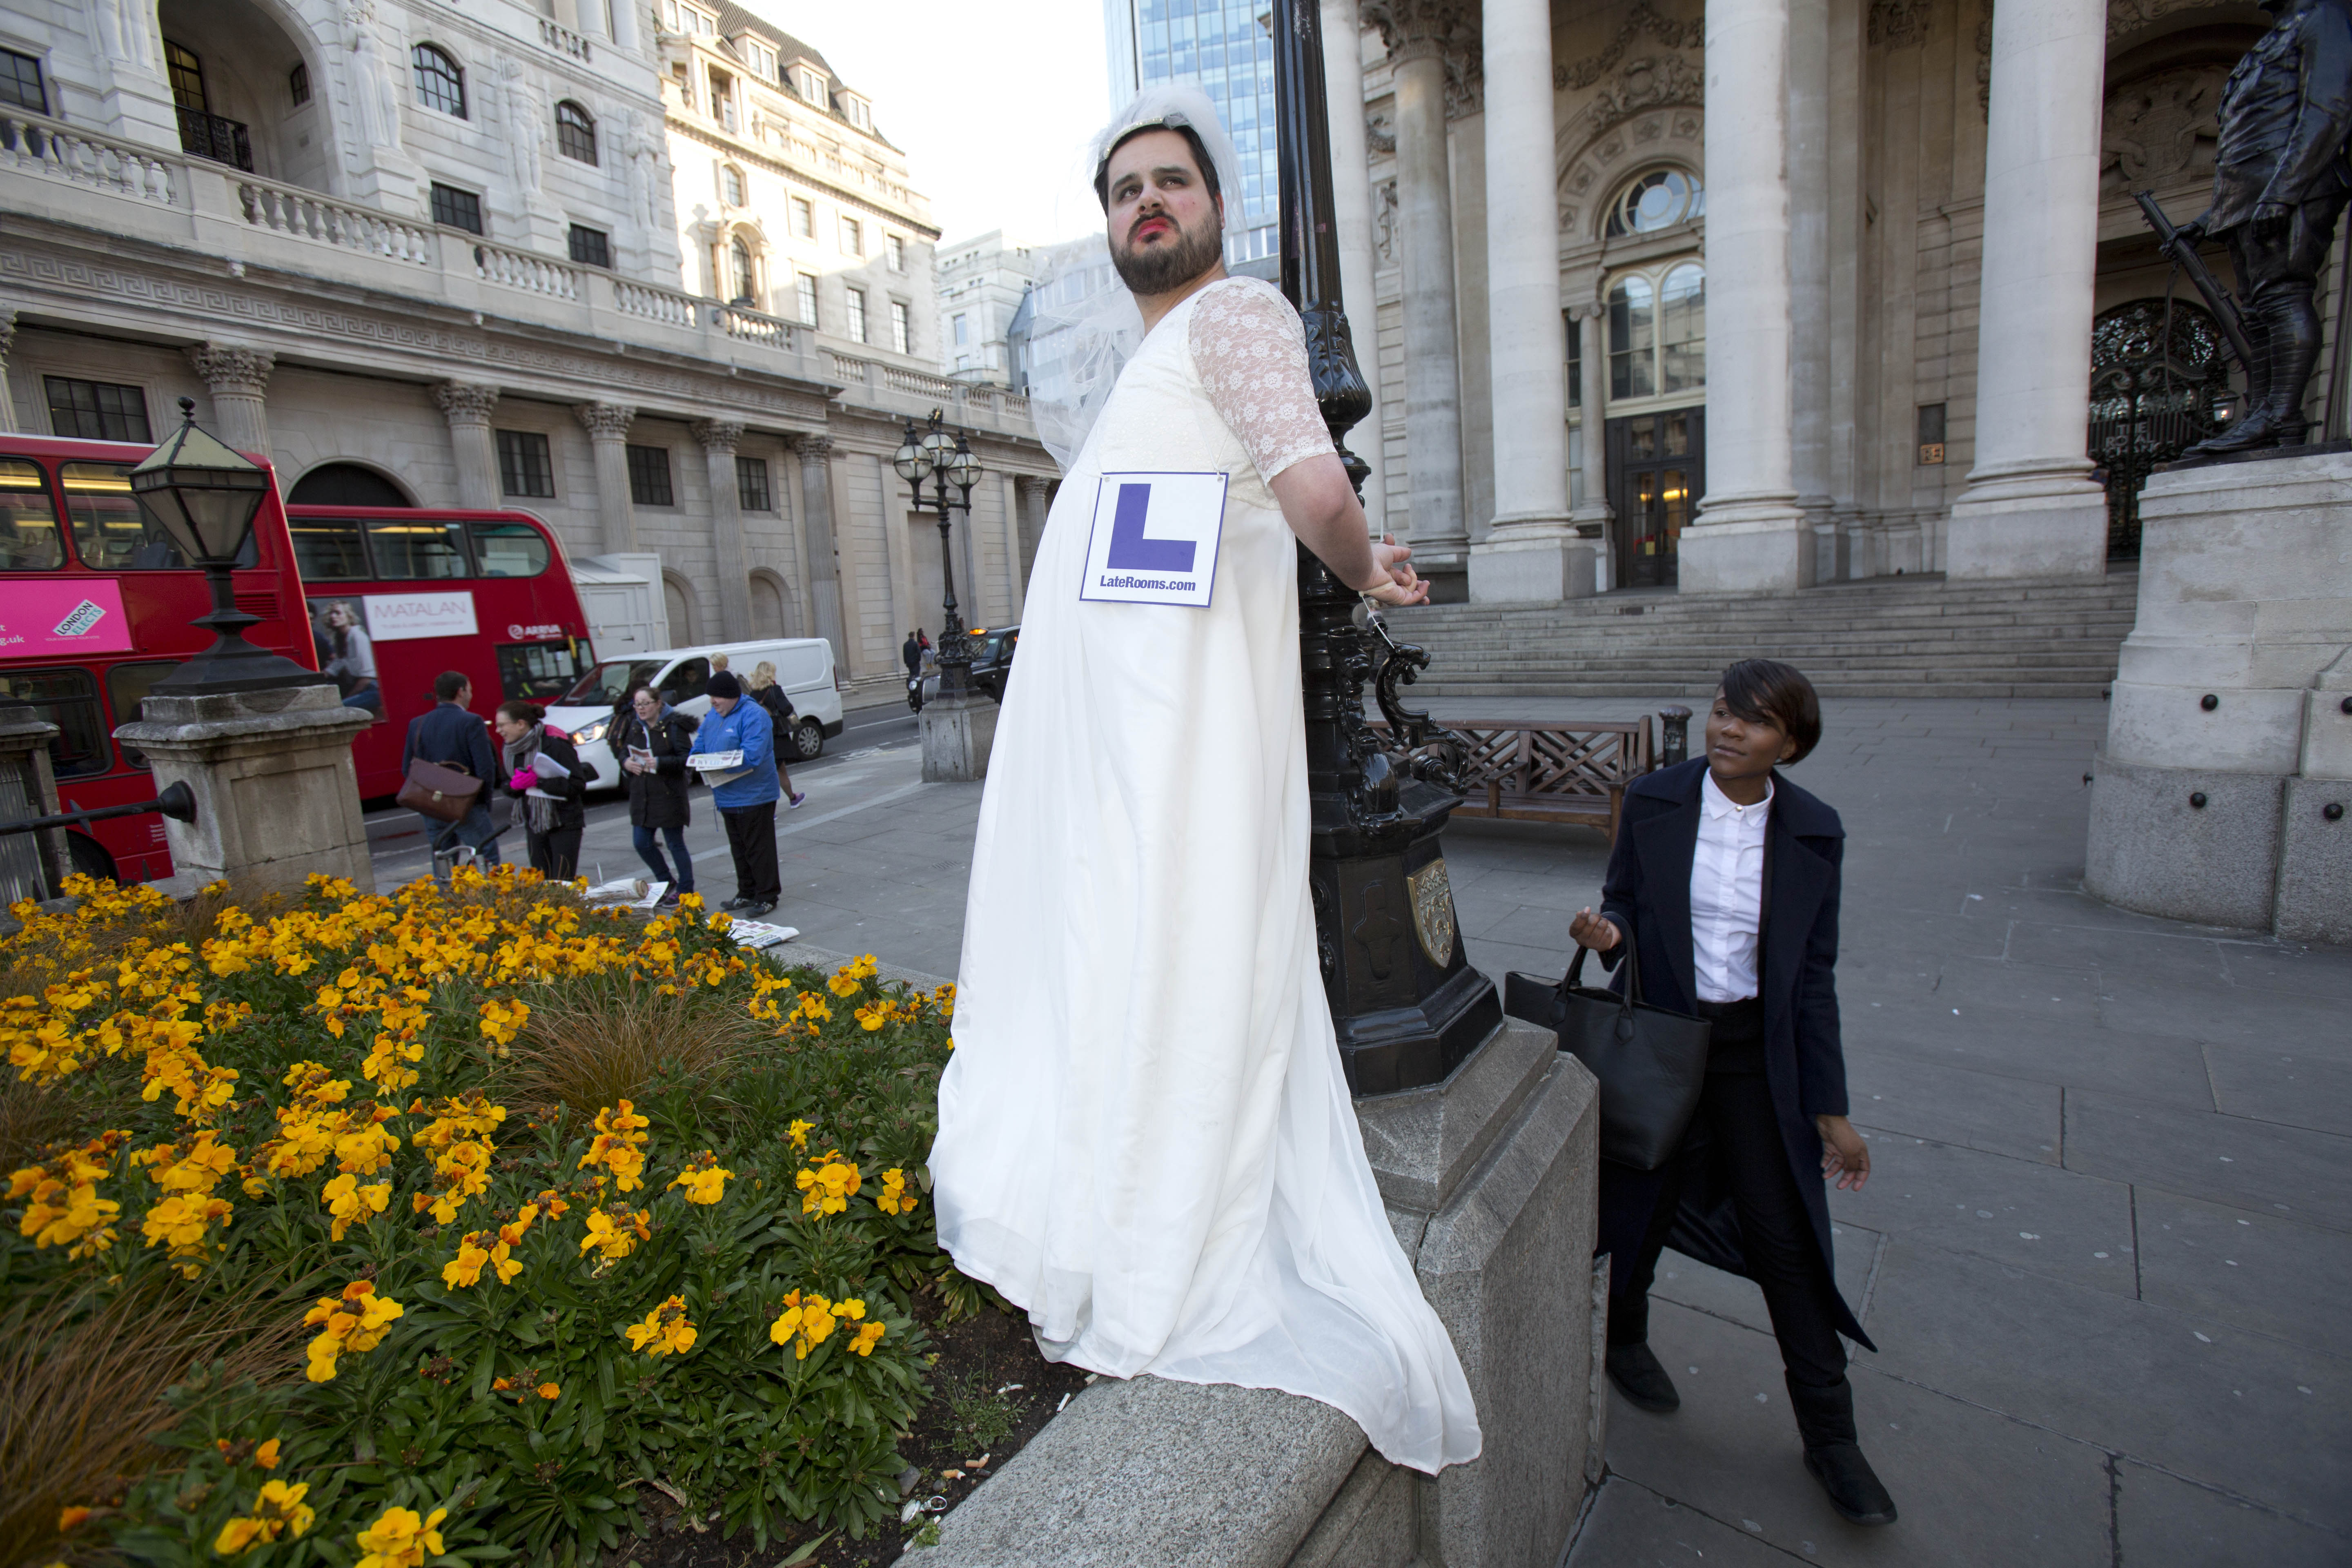 DonÕt Tell The Bride!Ê London city workers got an eyeful this morning as a number of ÔStagsÕ were spotted across the capital, including this chap who was photographed dressed in a wedding dress and tethered to a bench in the heart of The City. The scenes were created as living advertisements by LateRooms.com to celebrate the start of peak wedding season, as research reveals that 60% of stags will be sent off into married life with a holiday blow out that will cost attendees an average of £346 a head. ÊPhoto credit should read: Tim Anderson